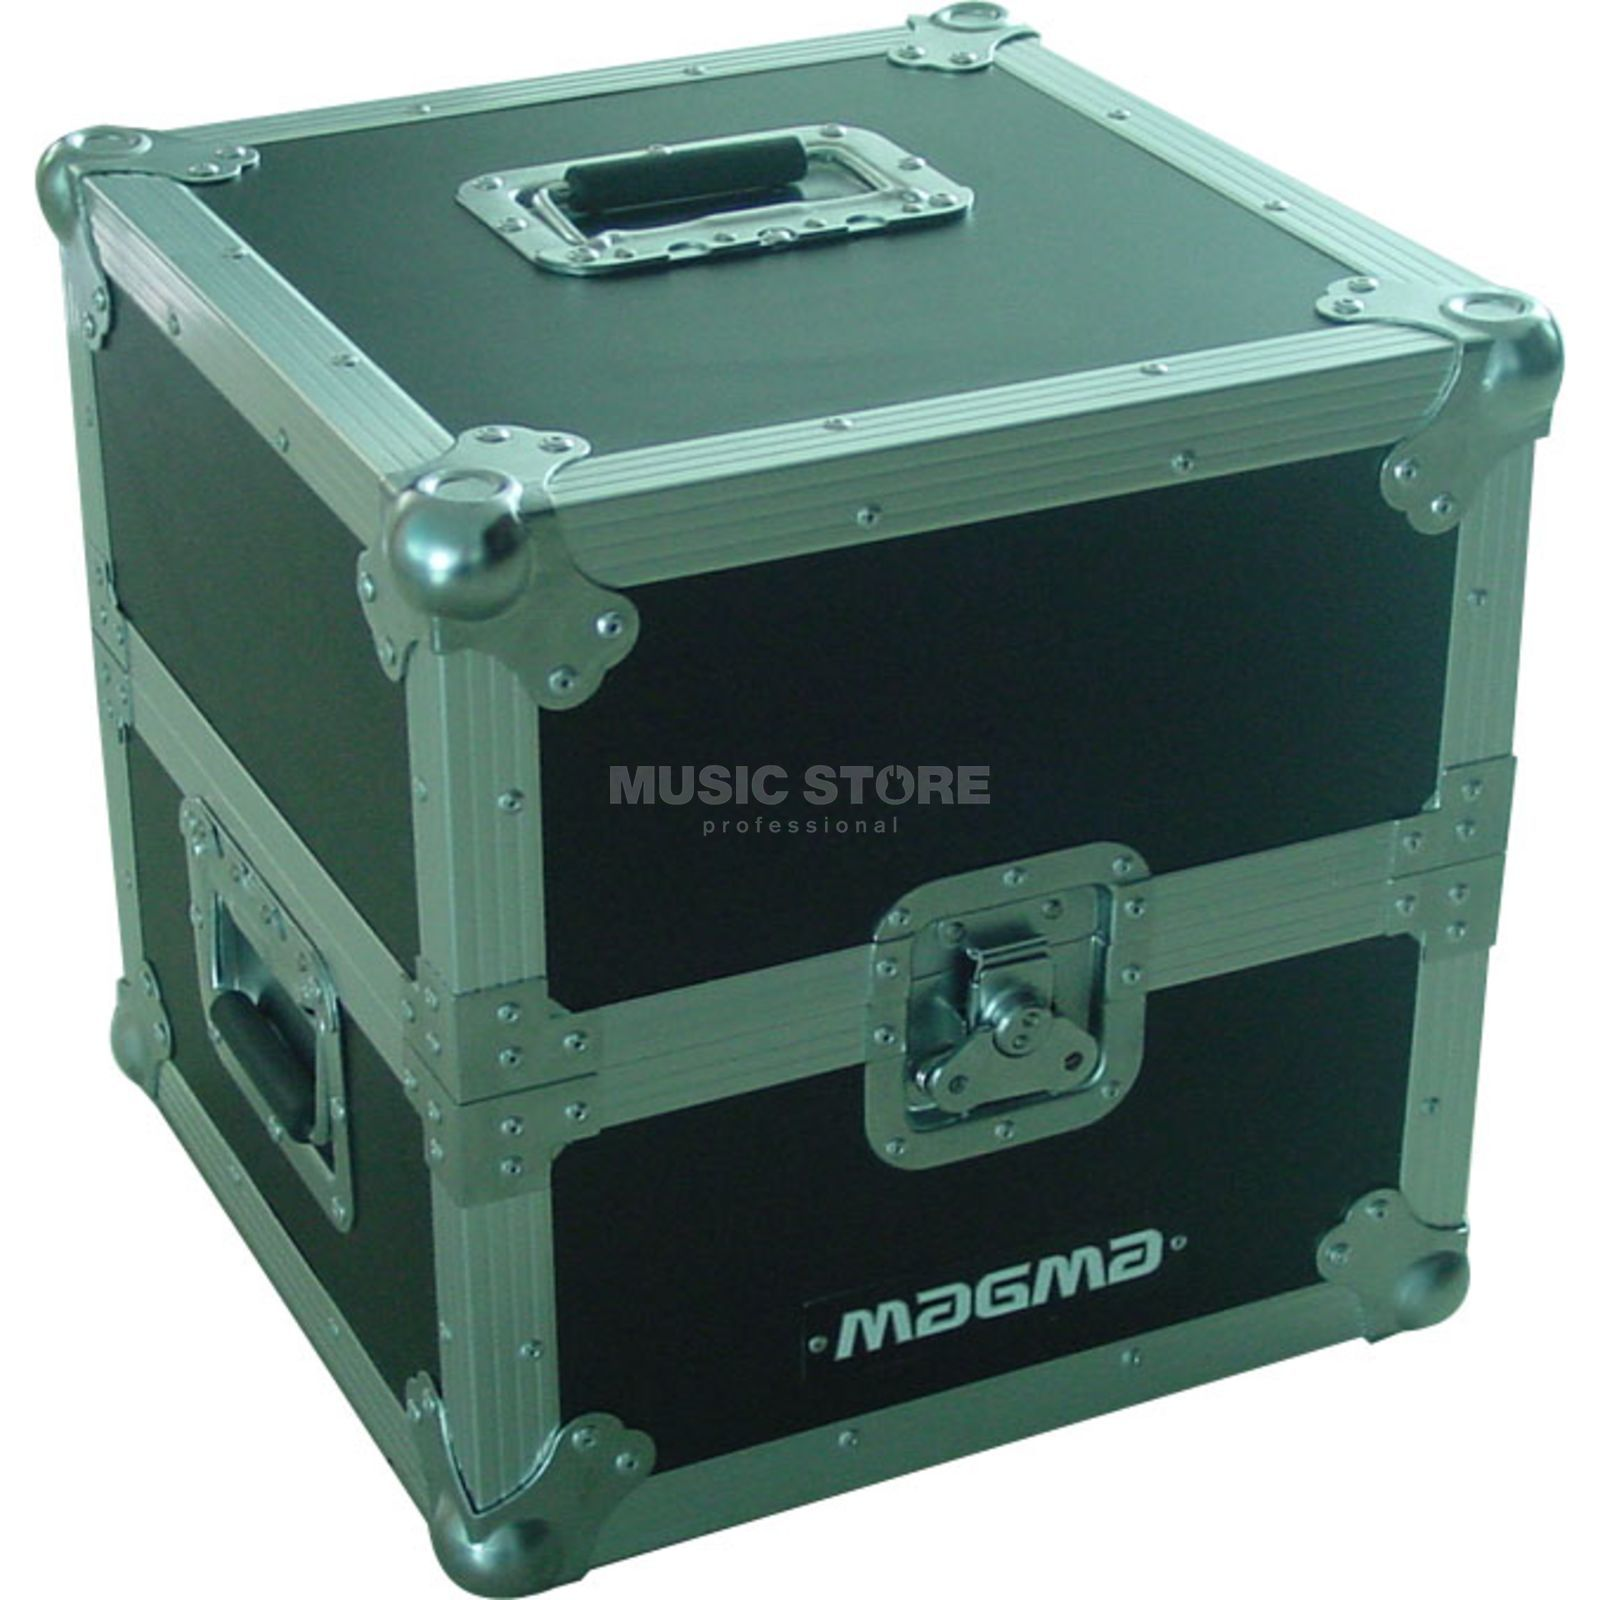 Magma LP-Case 100 SP Recordcase for 100 LPs Zdjęcie produktu